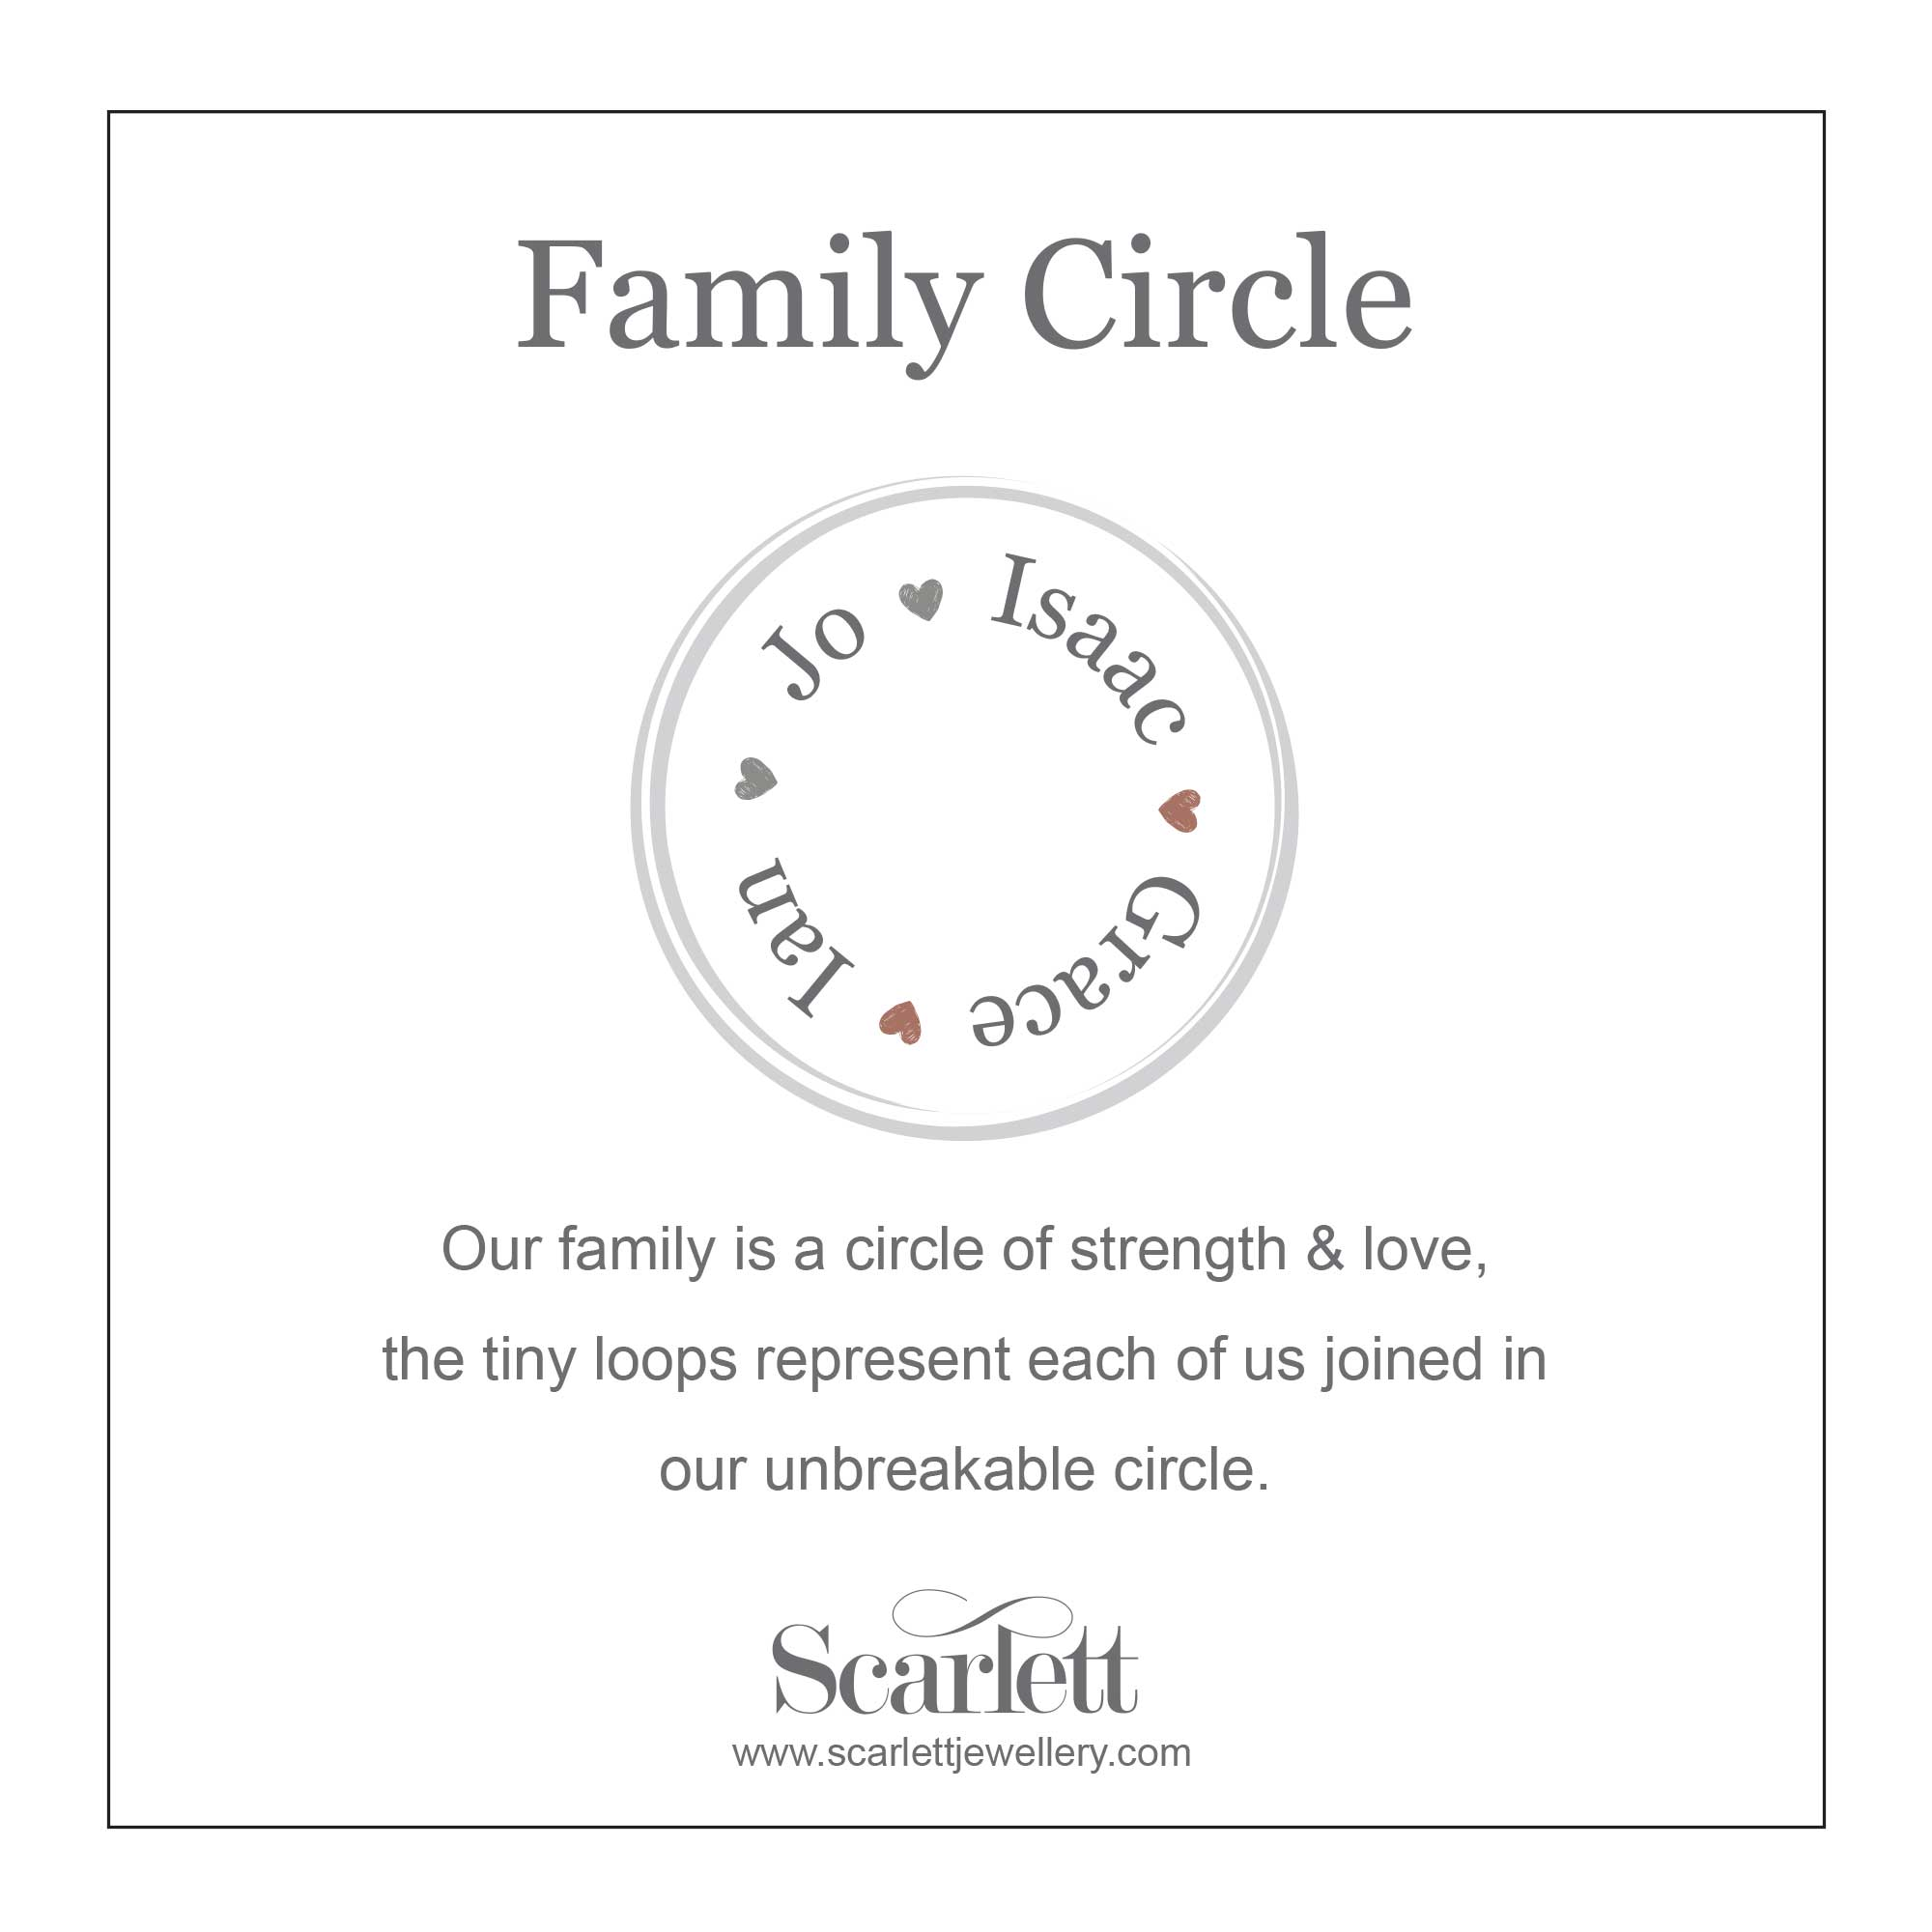 Personalised Family Circle Necklace Handmade UK Gift For Mum Mother's Day Birthday Scarlett Jewellery